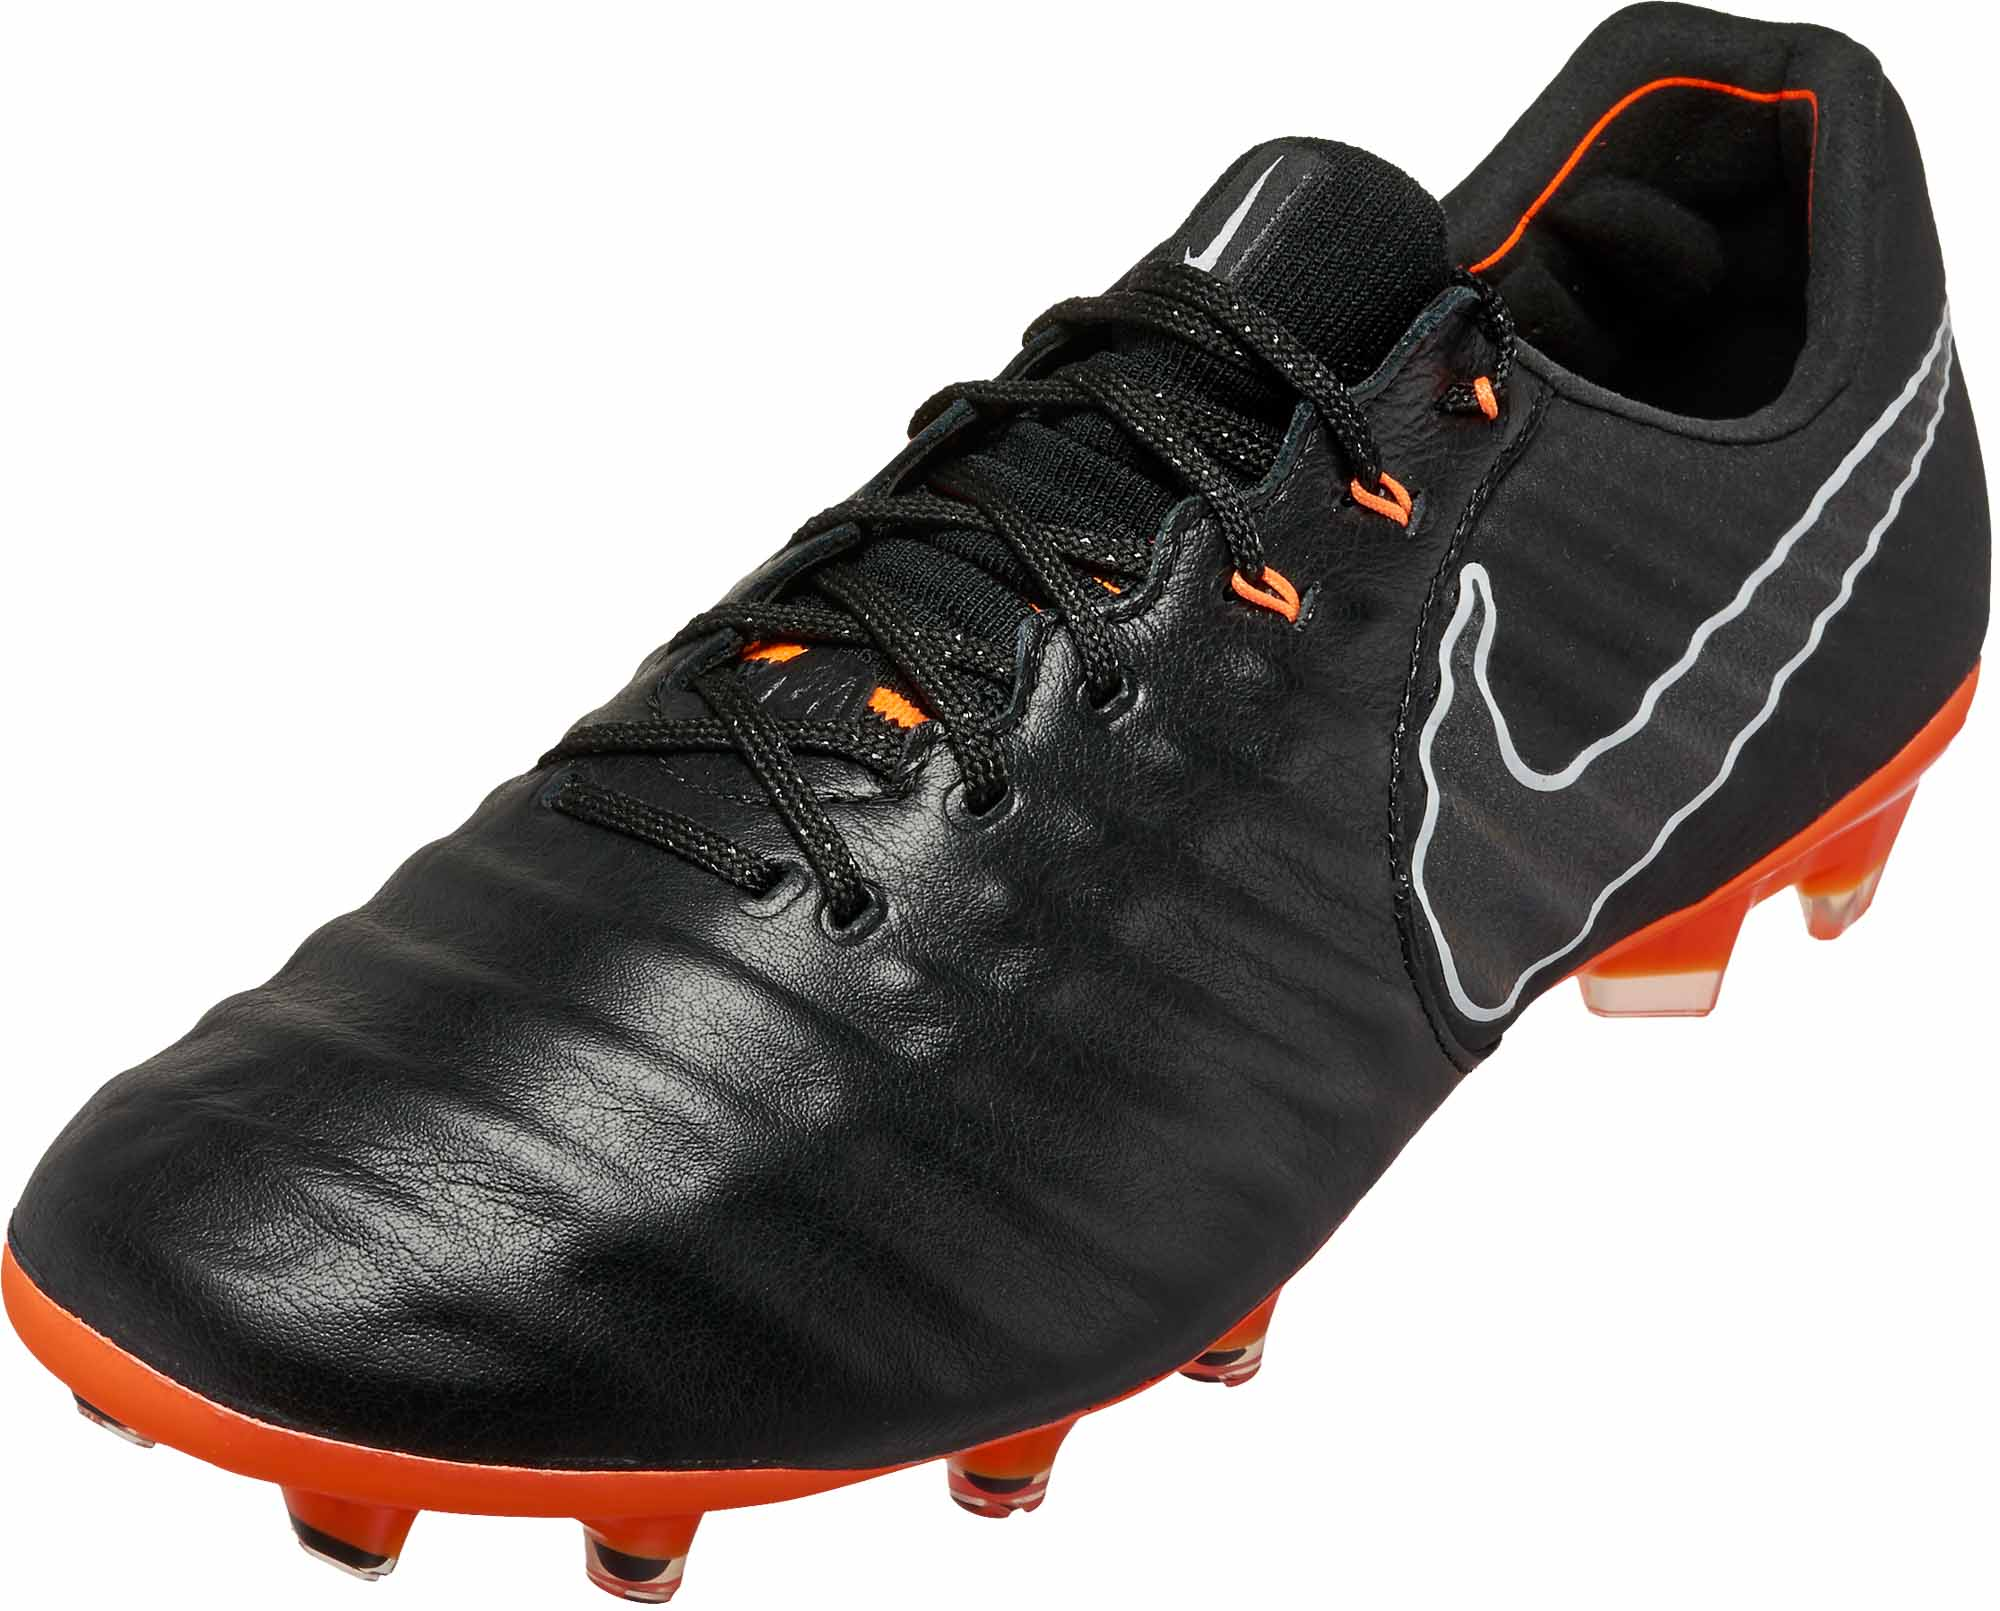 dd271f6dd Nike Tiempo Legend 7 Elite FG – Black Total Orange